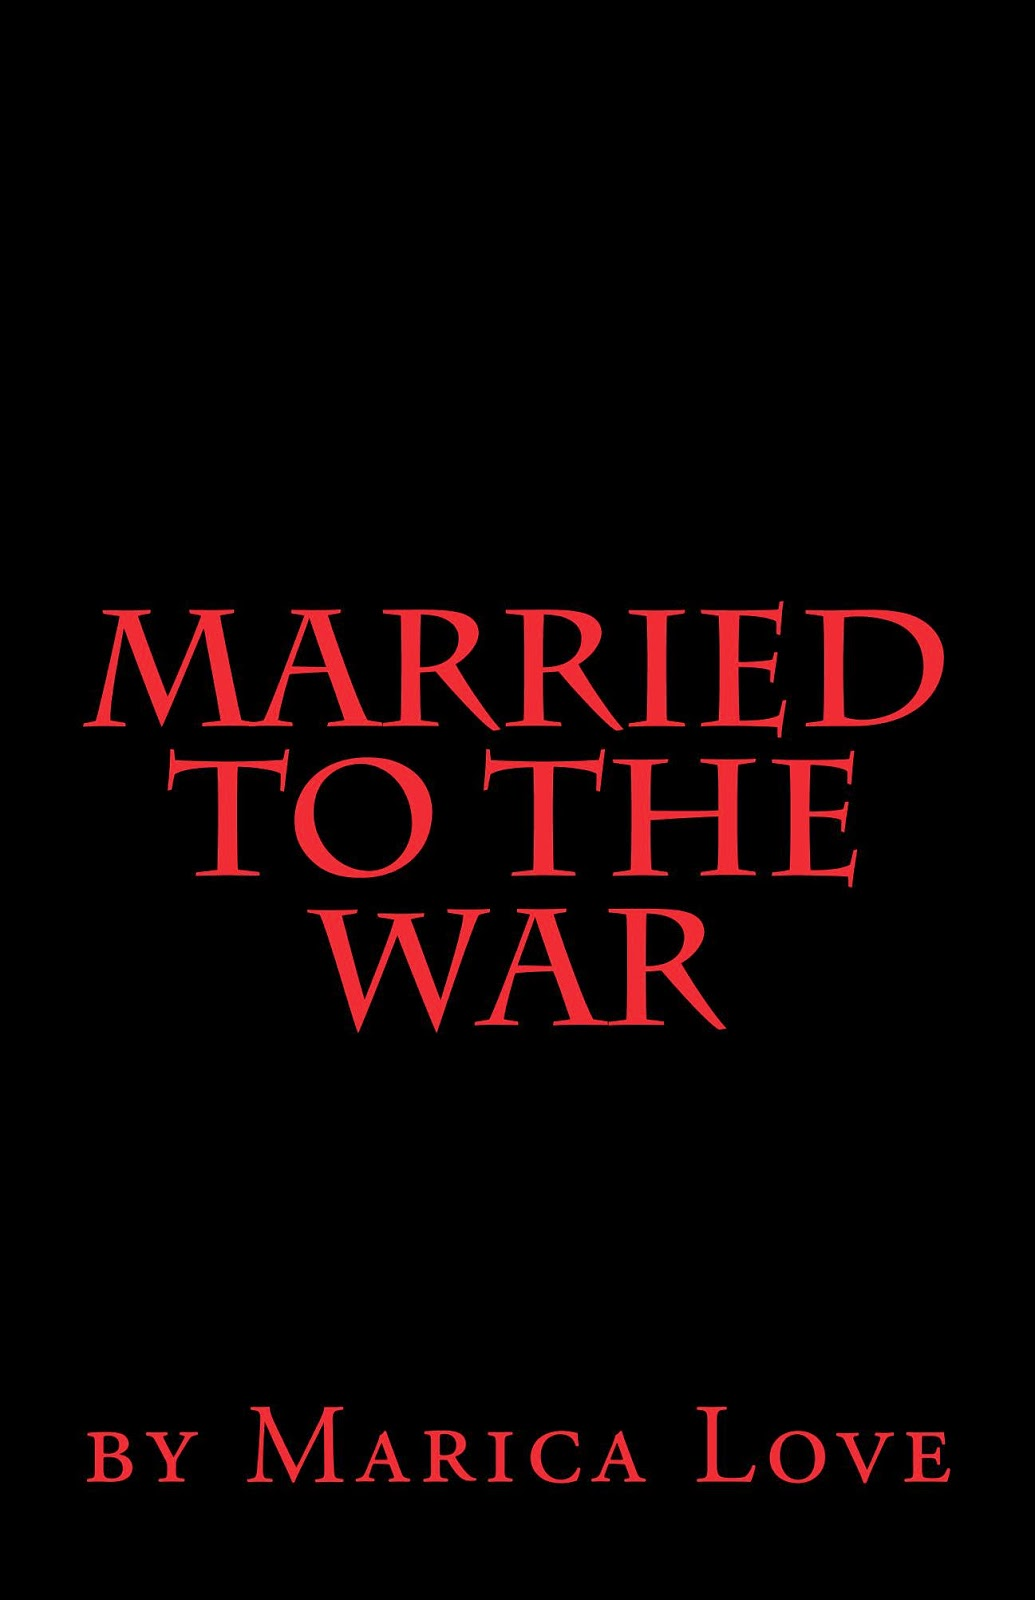 married to the war, marica love, marriage novel, novel marriage, self married